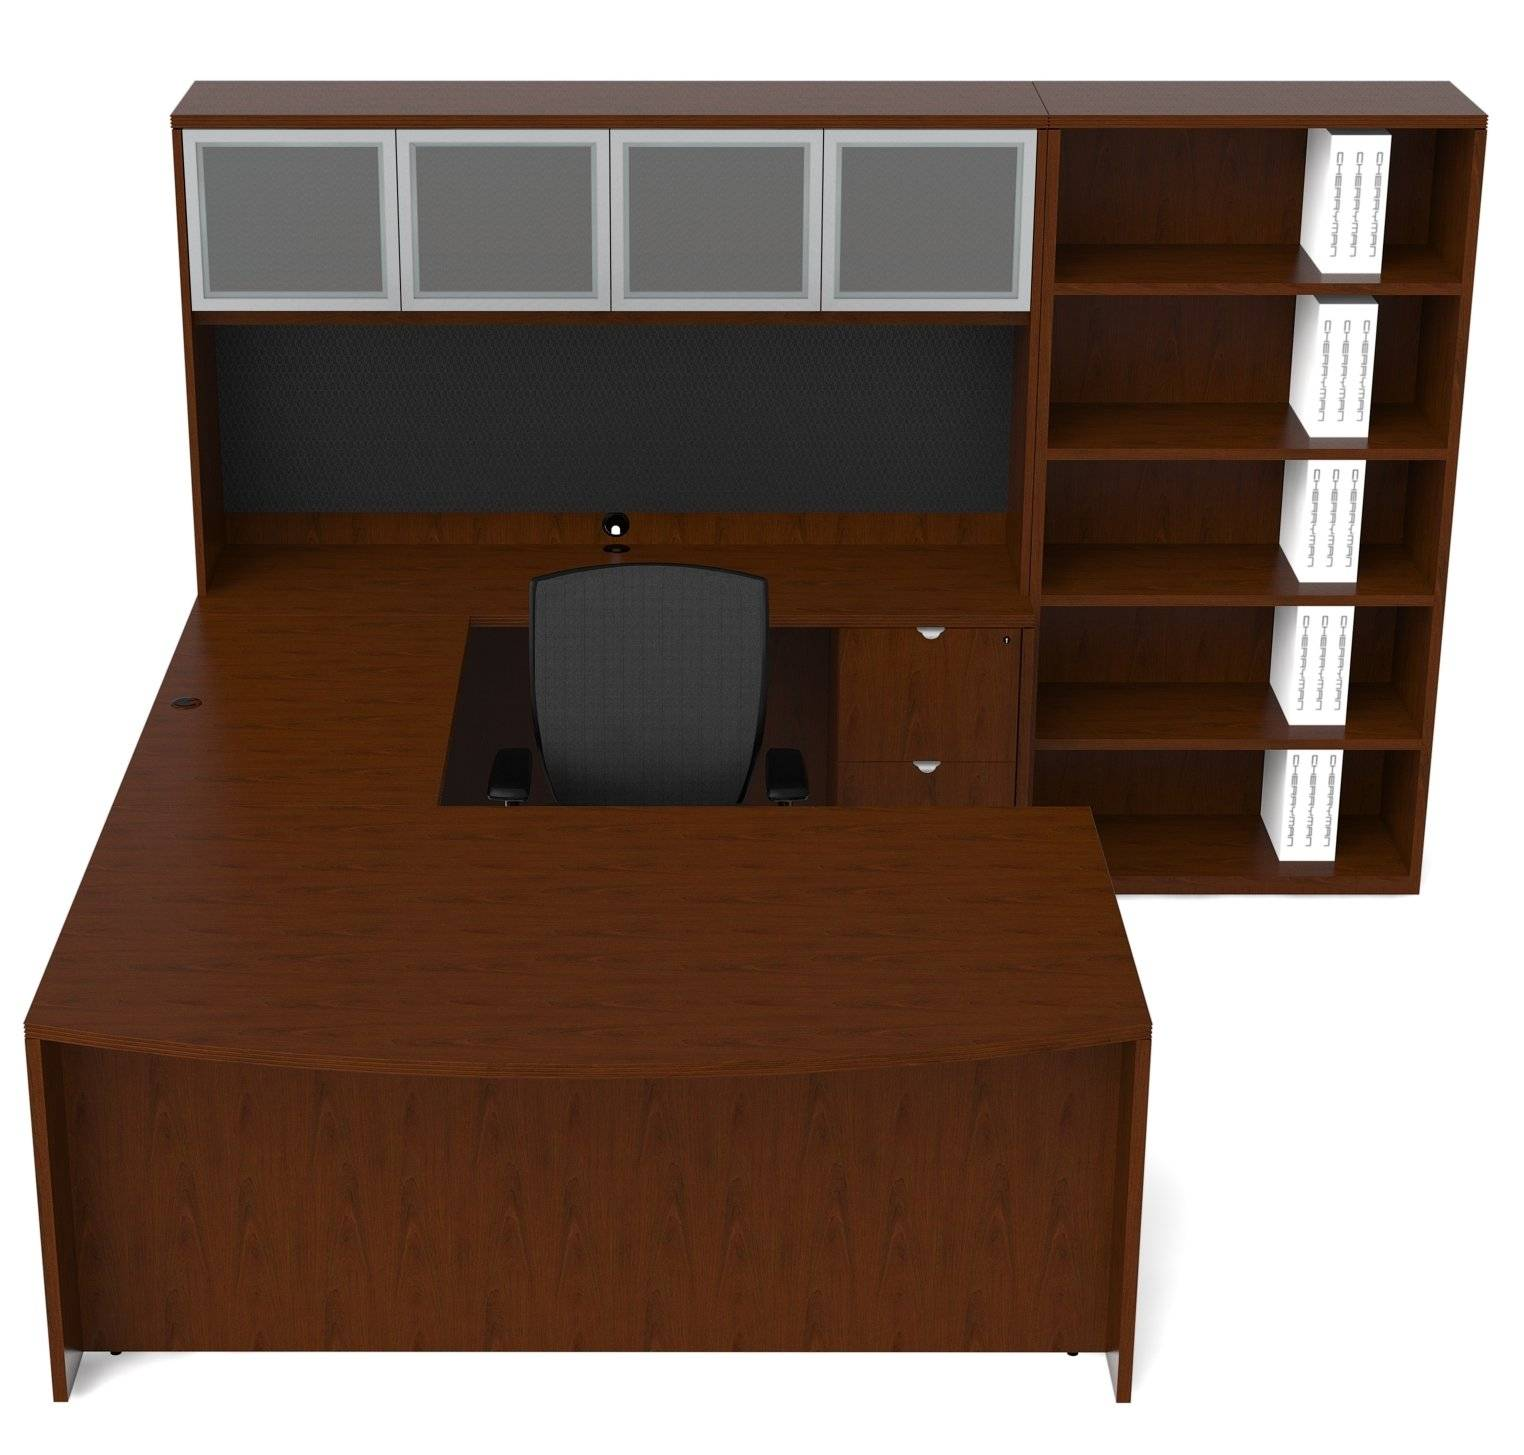 Marvelous photograph of Cherryman Jade Series Bow Front U Shape Desk Configuration w  with #3E2312 color and 1524x1455 pixels